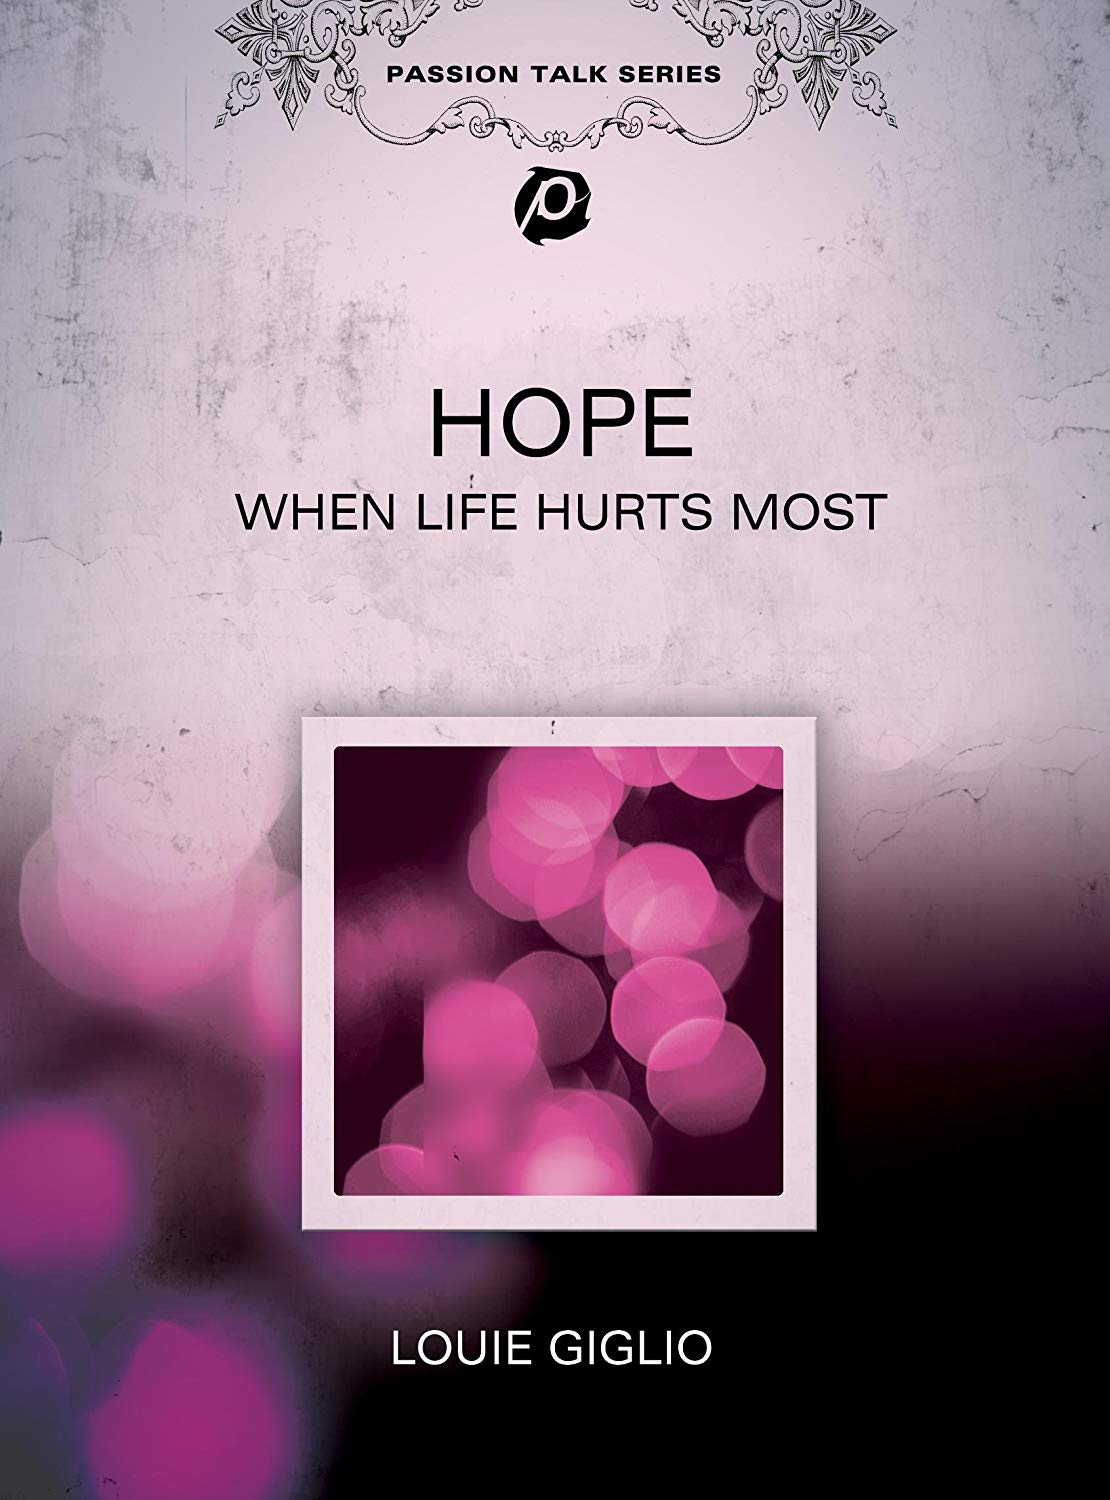 Hope when life hurts most